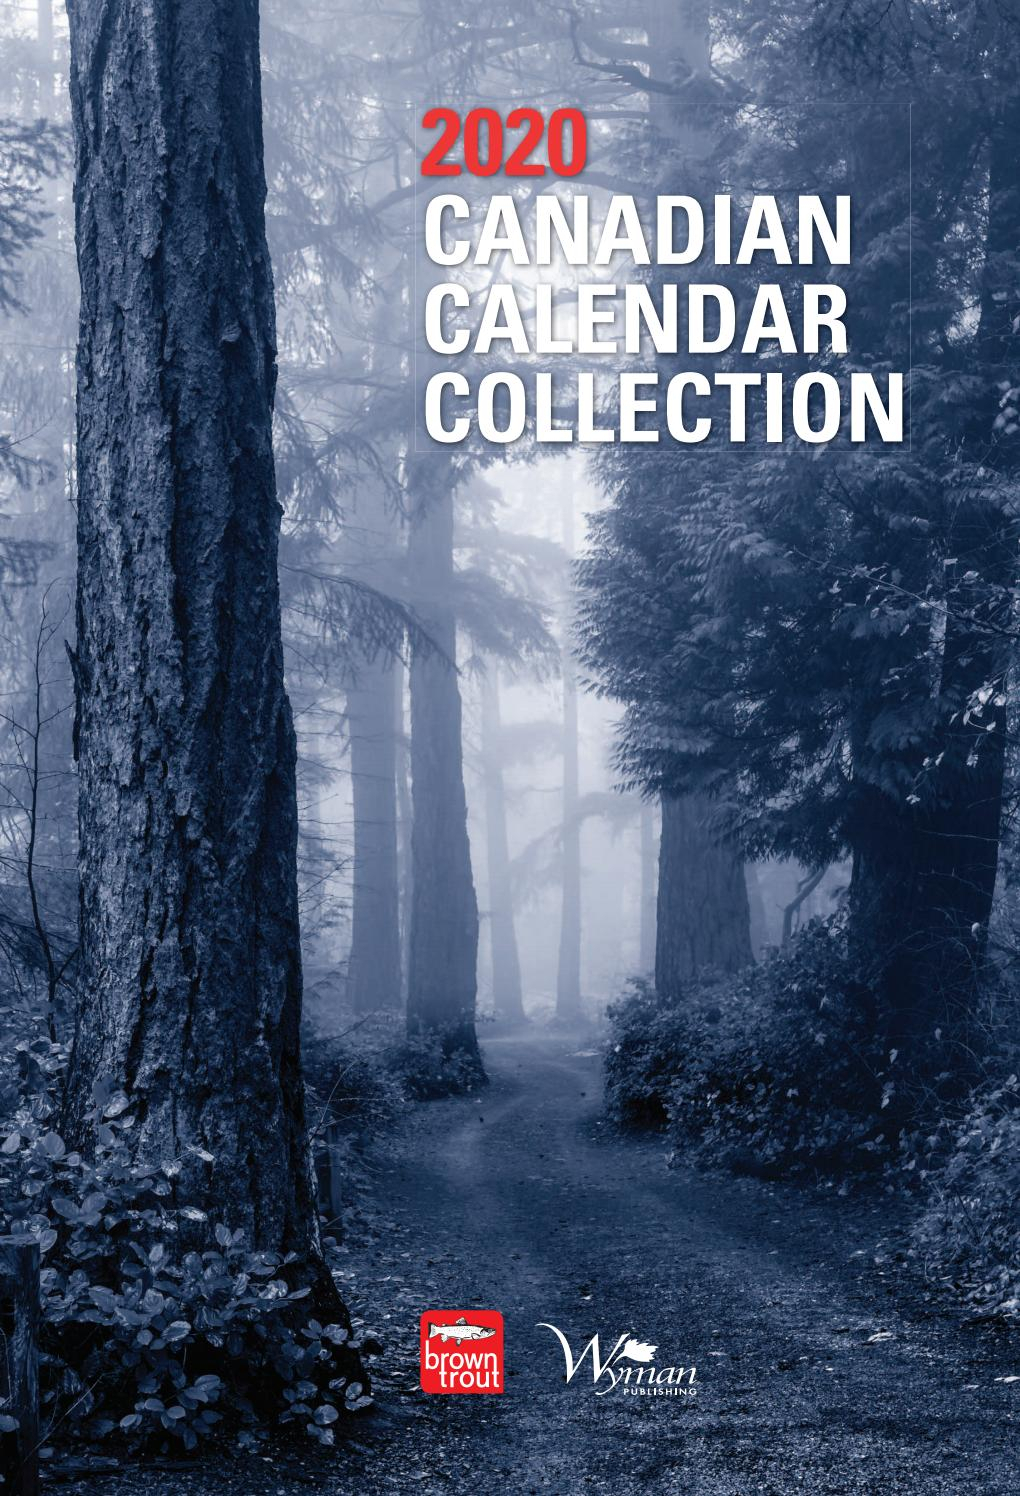 Browntrout Canada 2020 Calendar Collectionmichael Brown pertaining to Yrdsb Calendar 2020